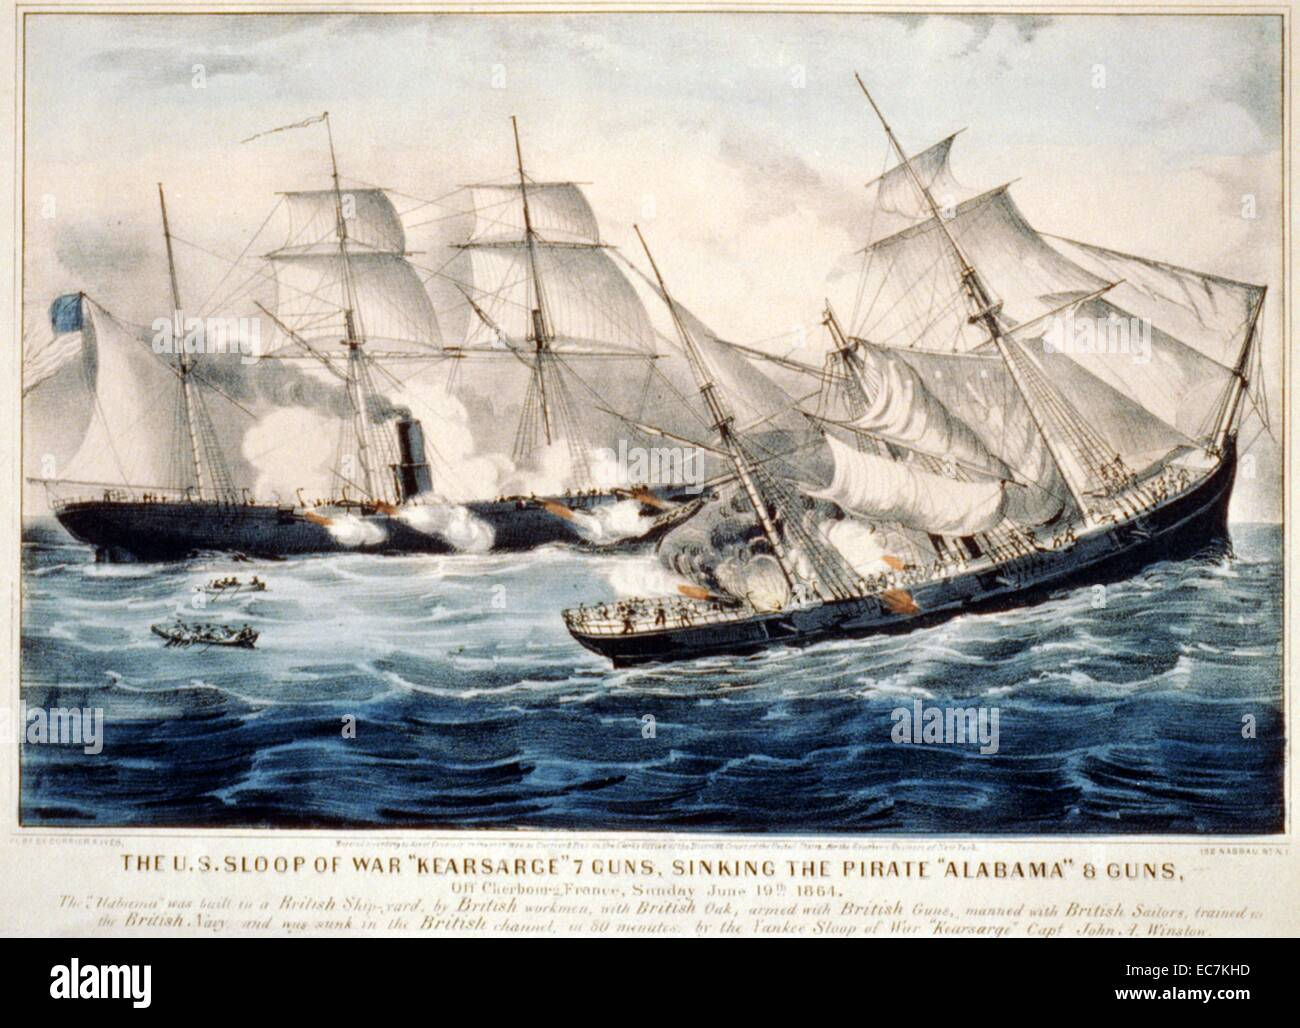 The U.S. sloop of war 'Kearsarge' 7 guns, sinking the pirate 'Alabama' 8 guns off Cherbourg, France - Stock Image